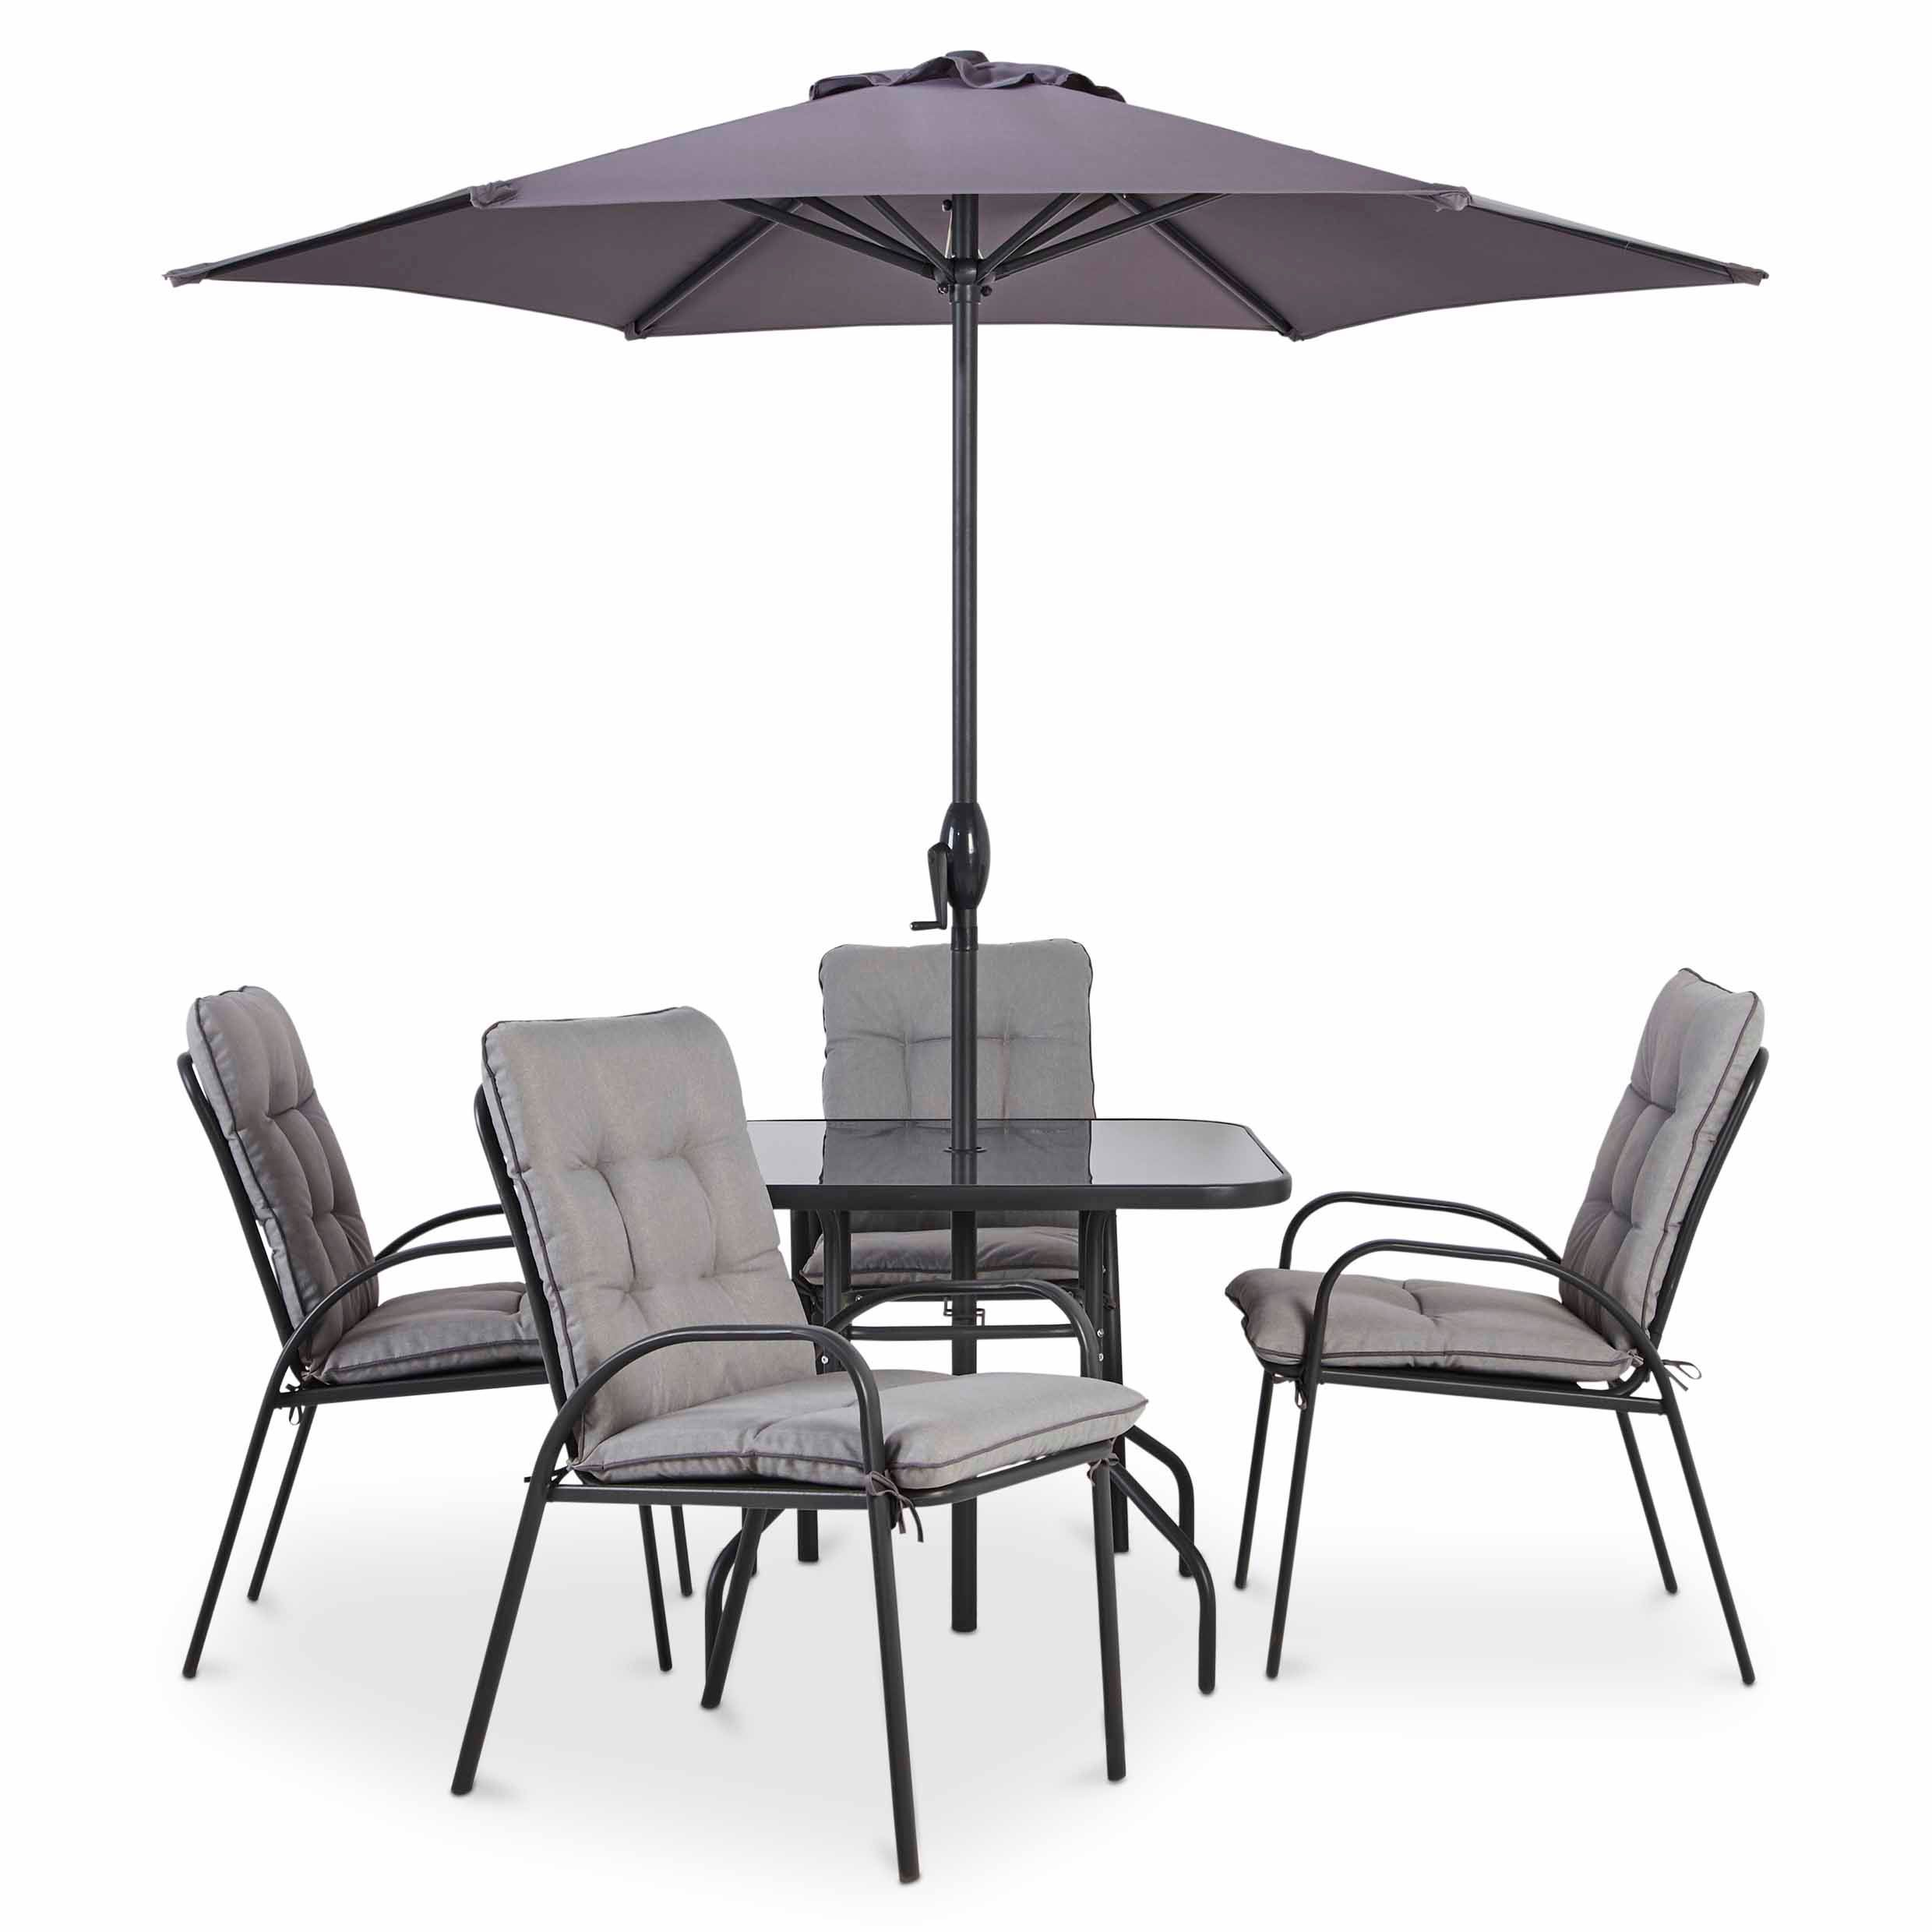 New dining table set b q light of dining room for B q dining room furniture